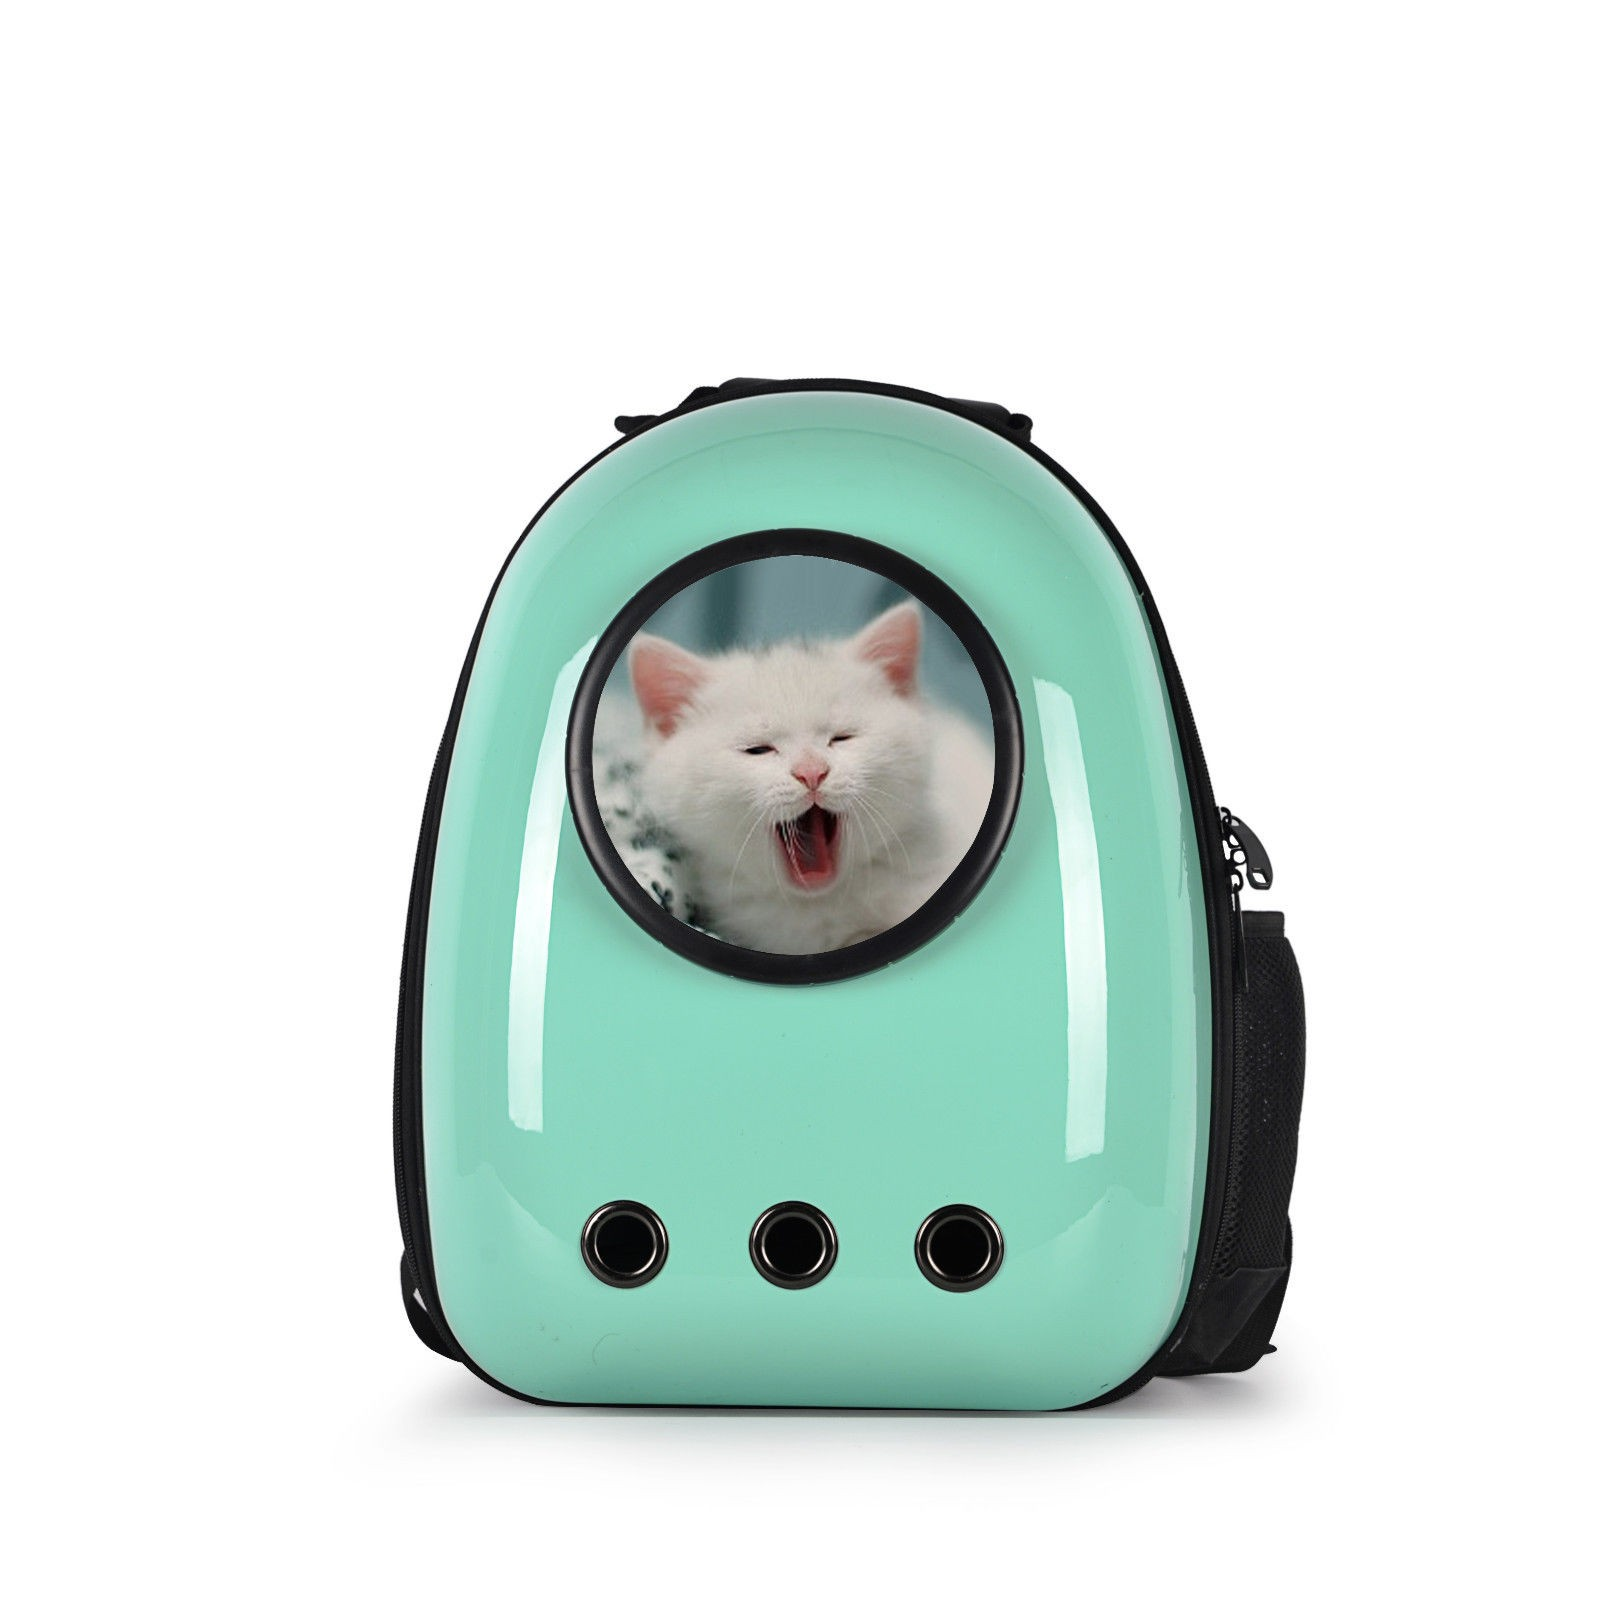 astronaut space capsule backpack - photo #11